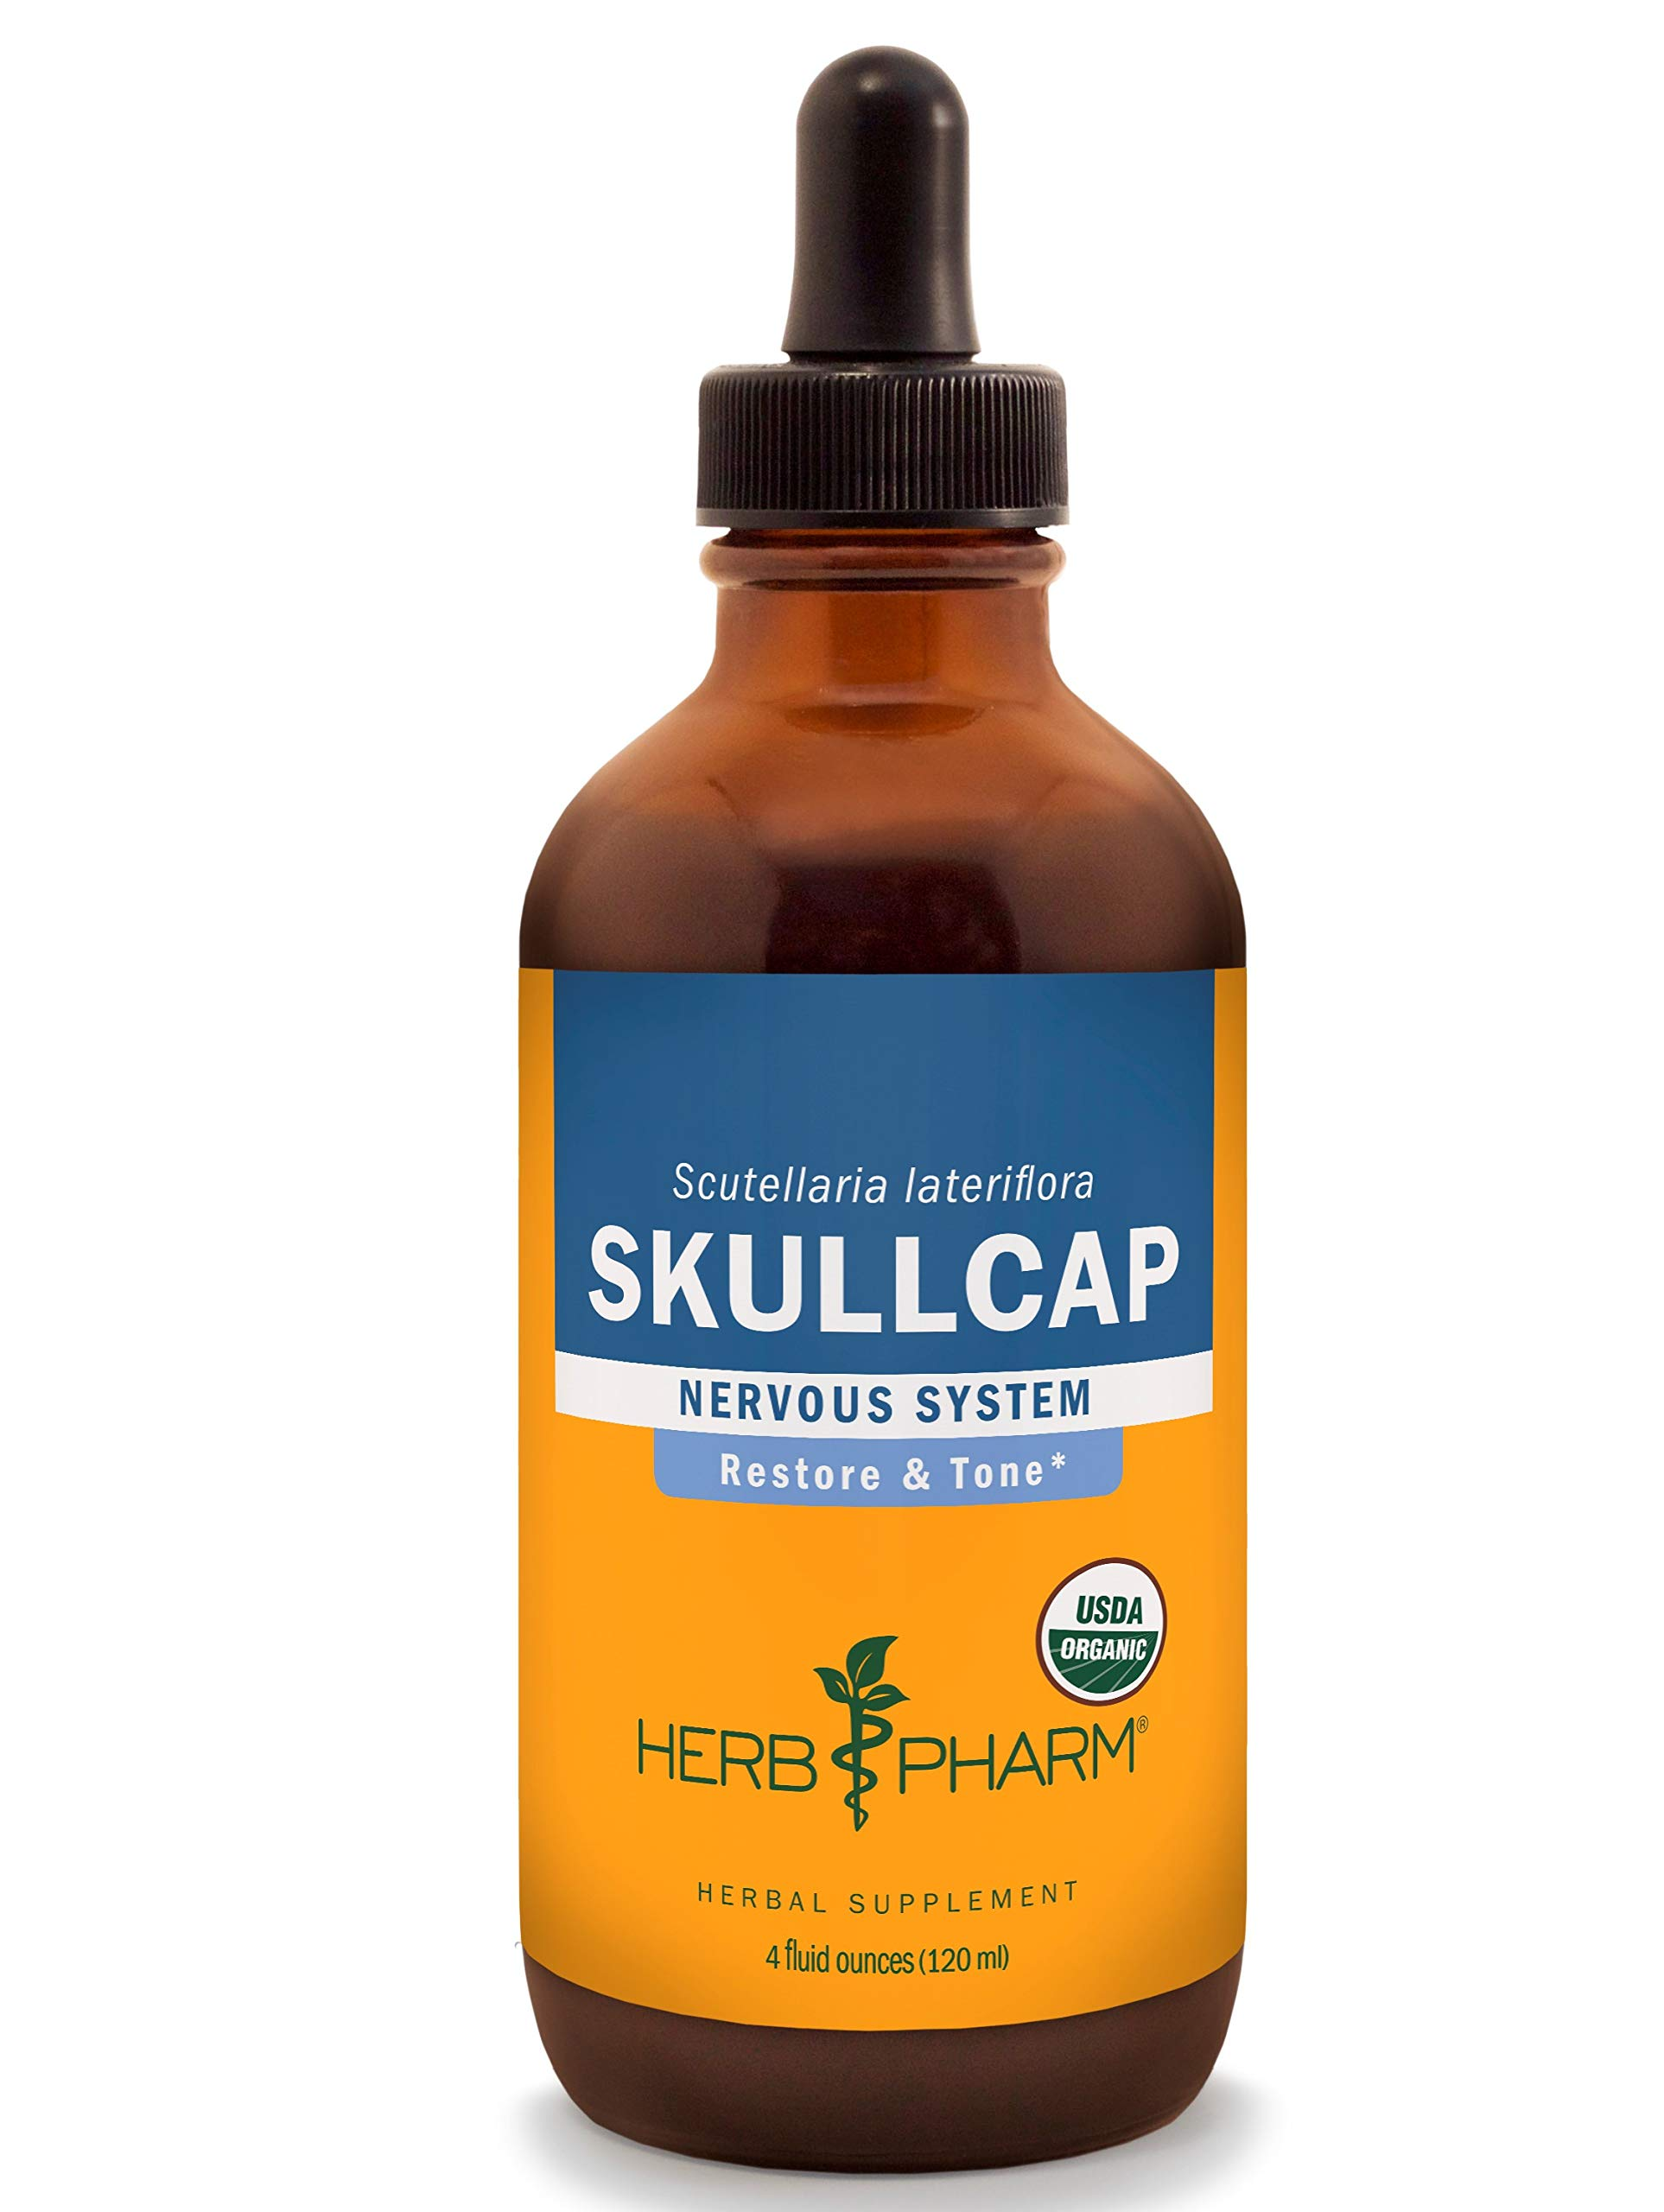 Herb Pharm Certified Organic Skullcap Liquid Extract for Nervous System Support - 4 Ounce